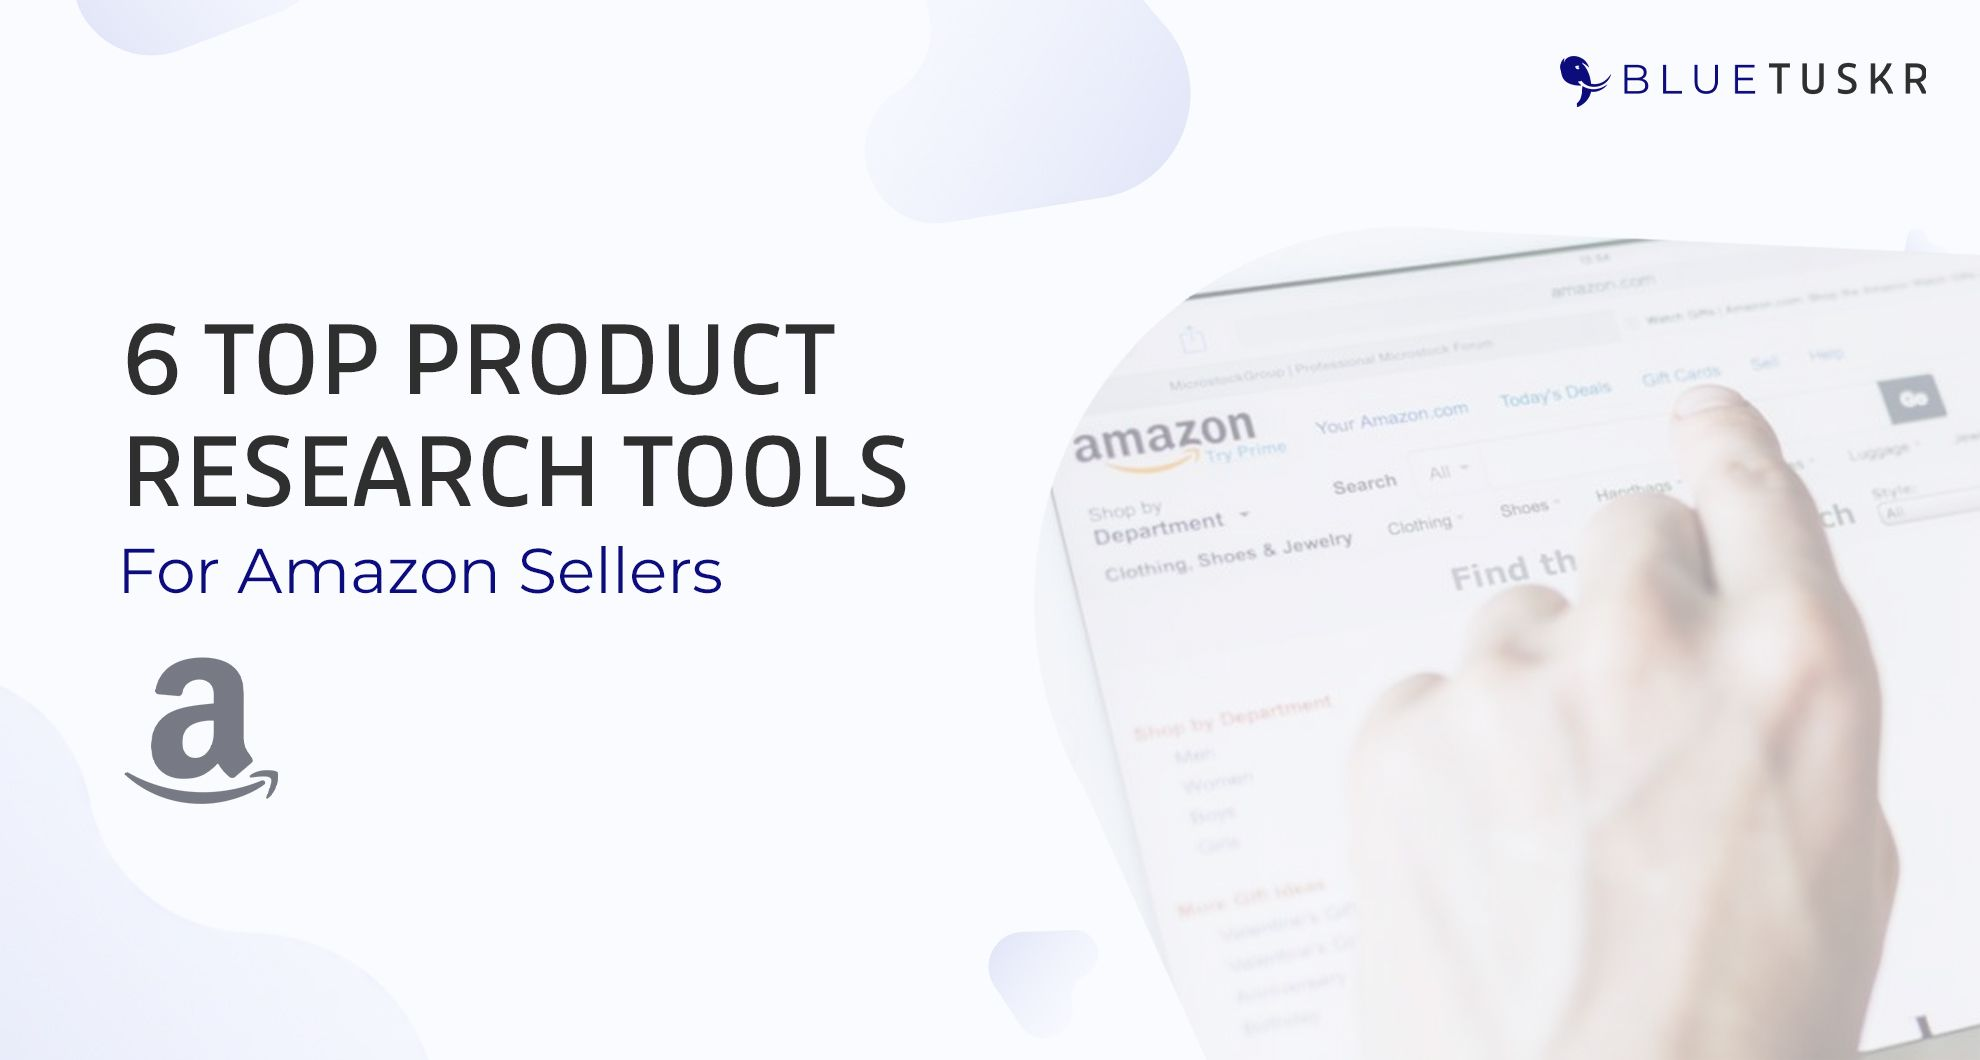 6 Top Product Research Tools for Amazon Sellers